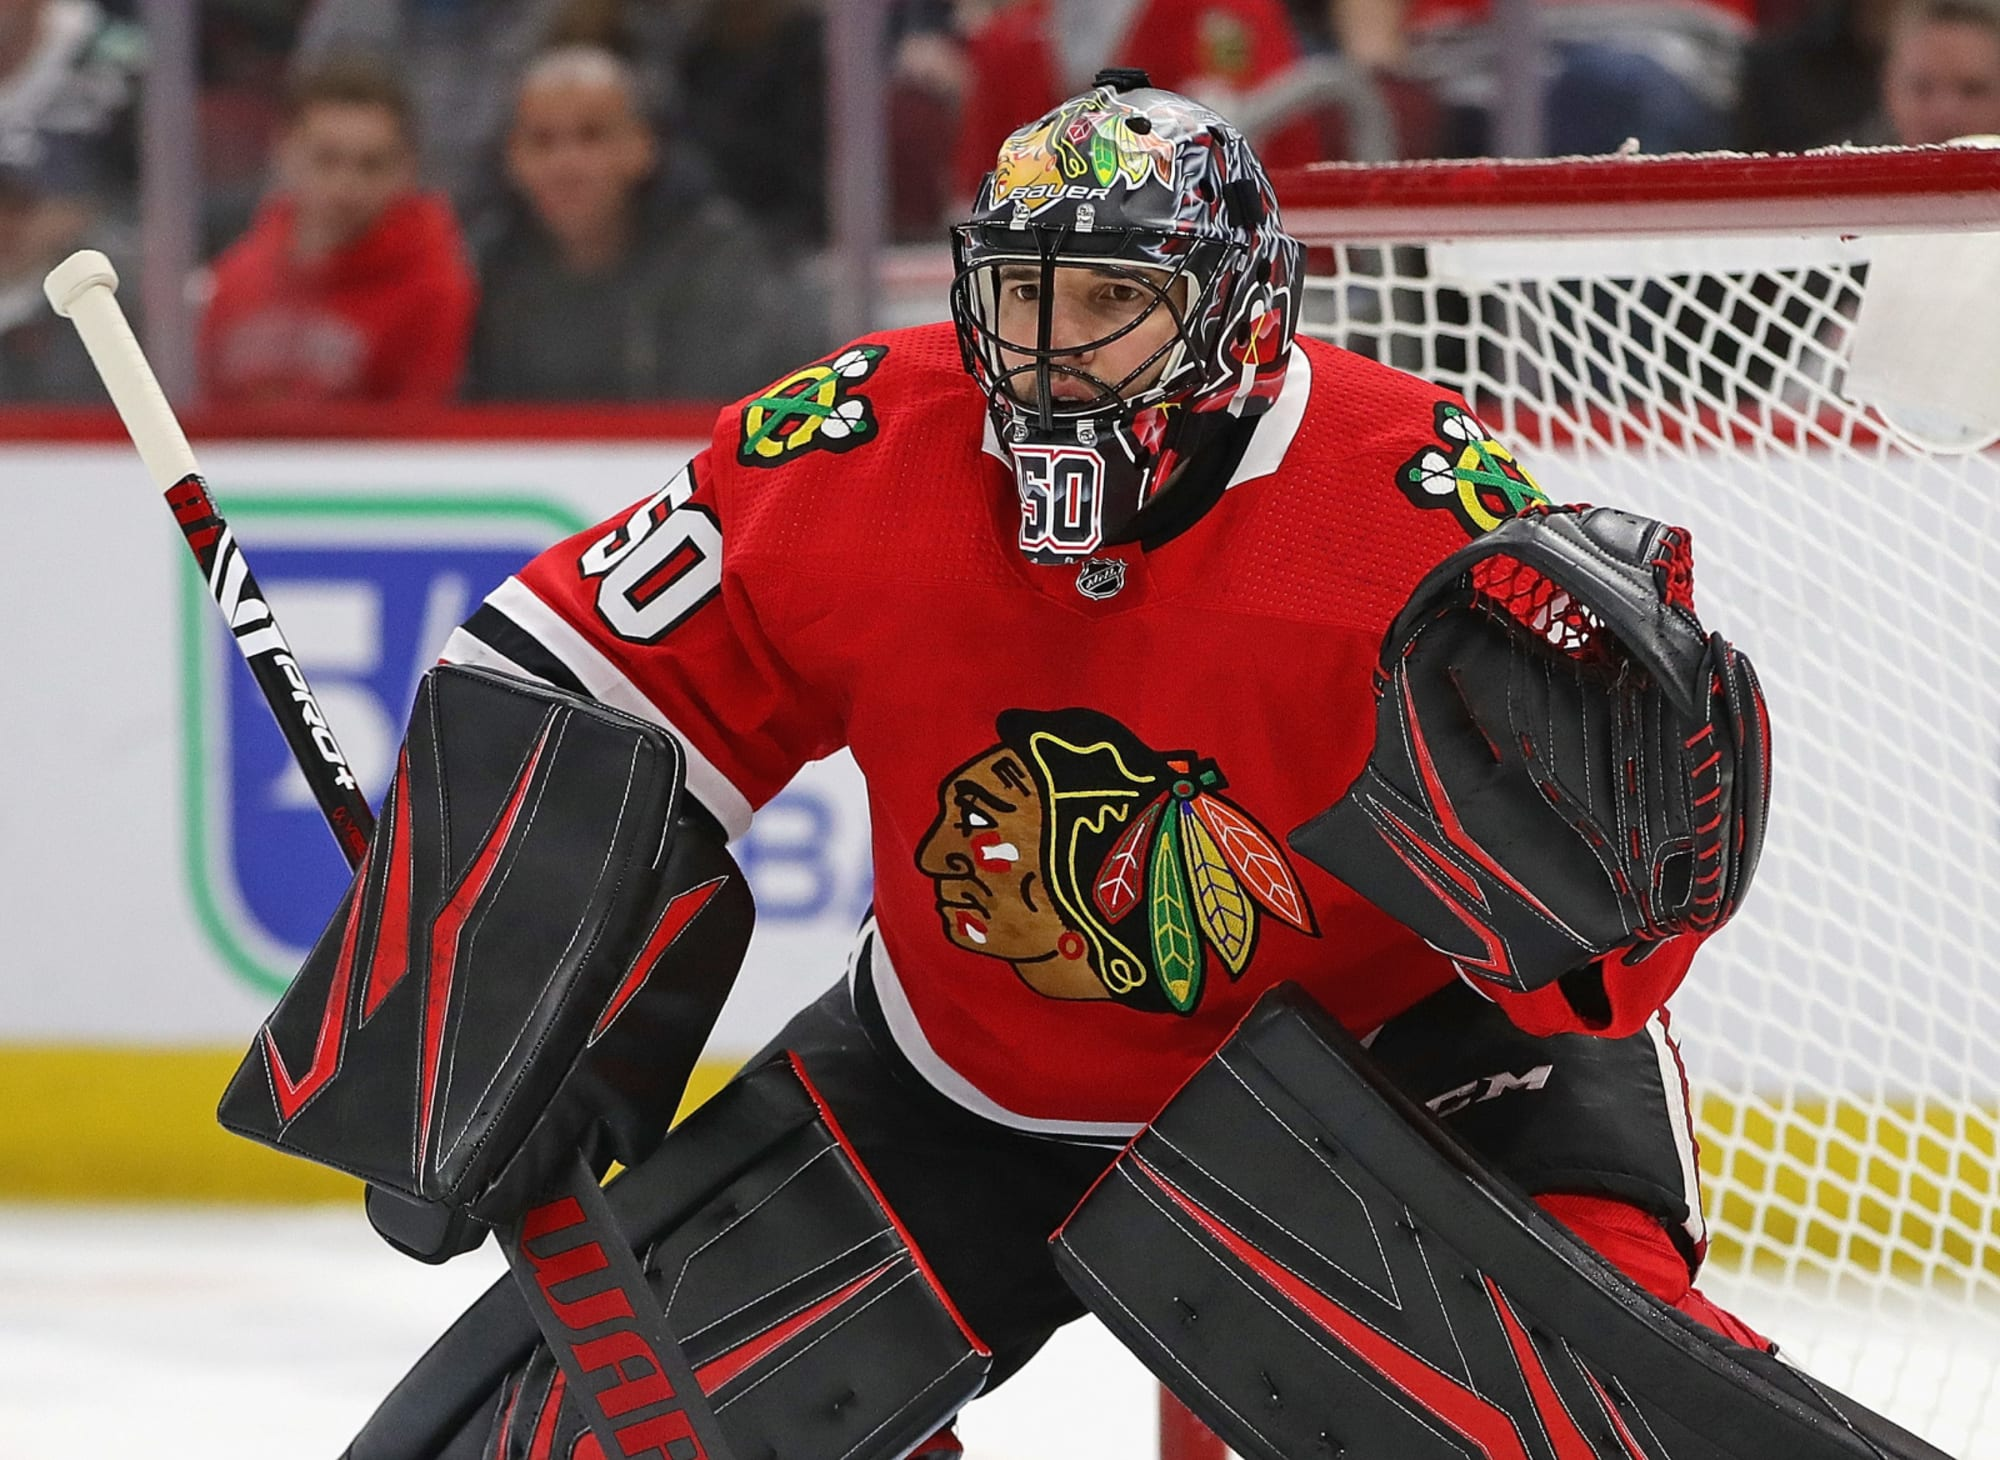 Corey Crawford S Potential Absence Impacts New Jersey Devils Plans